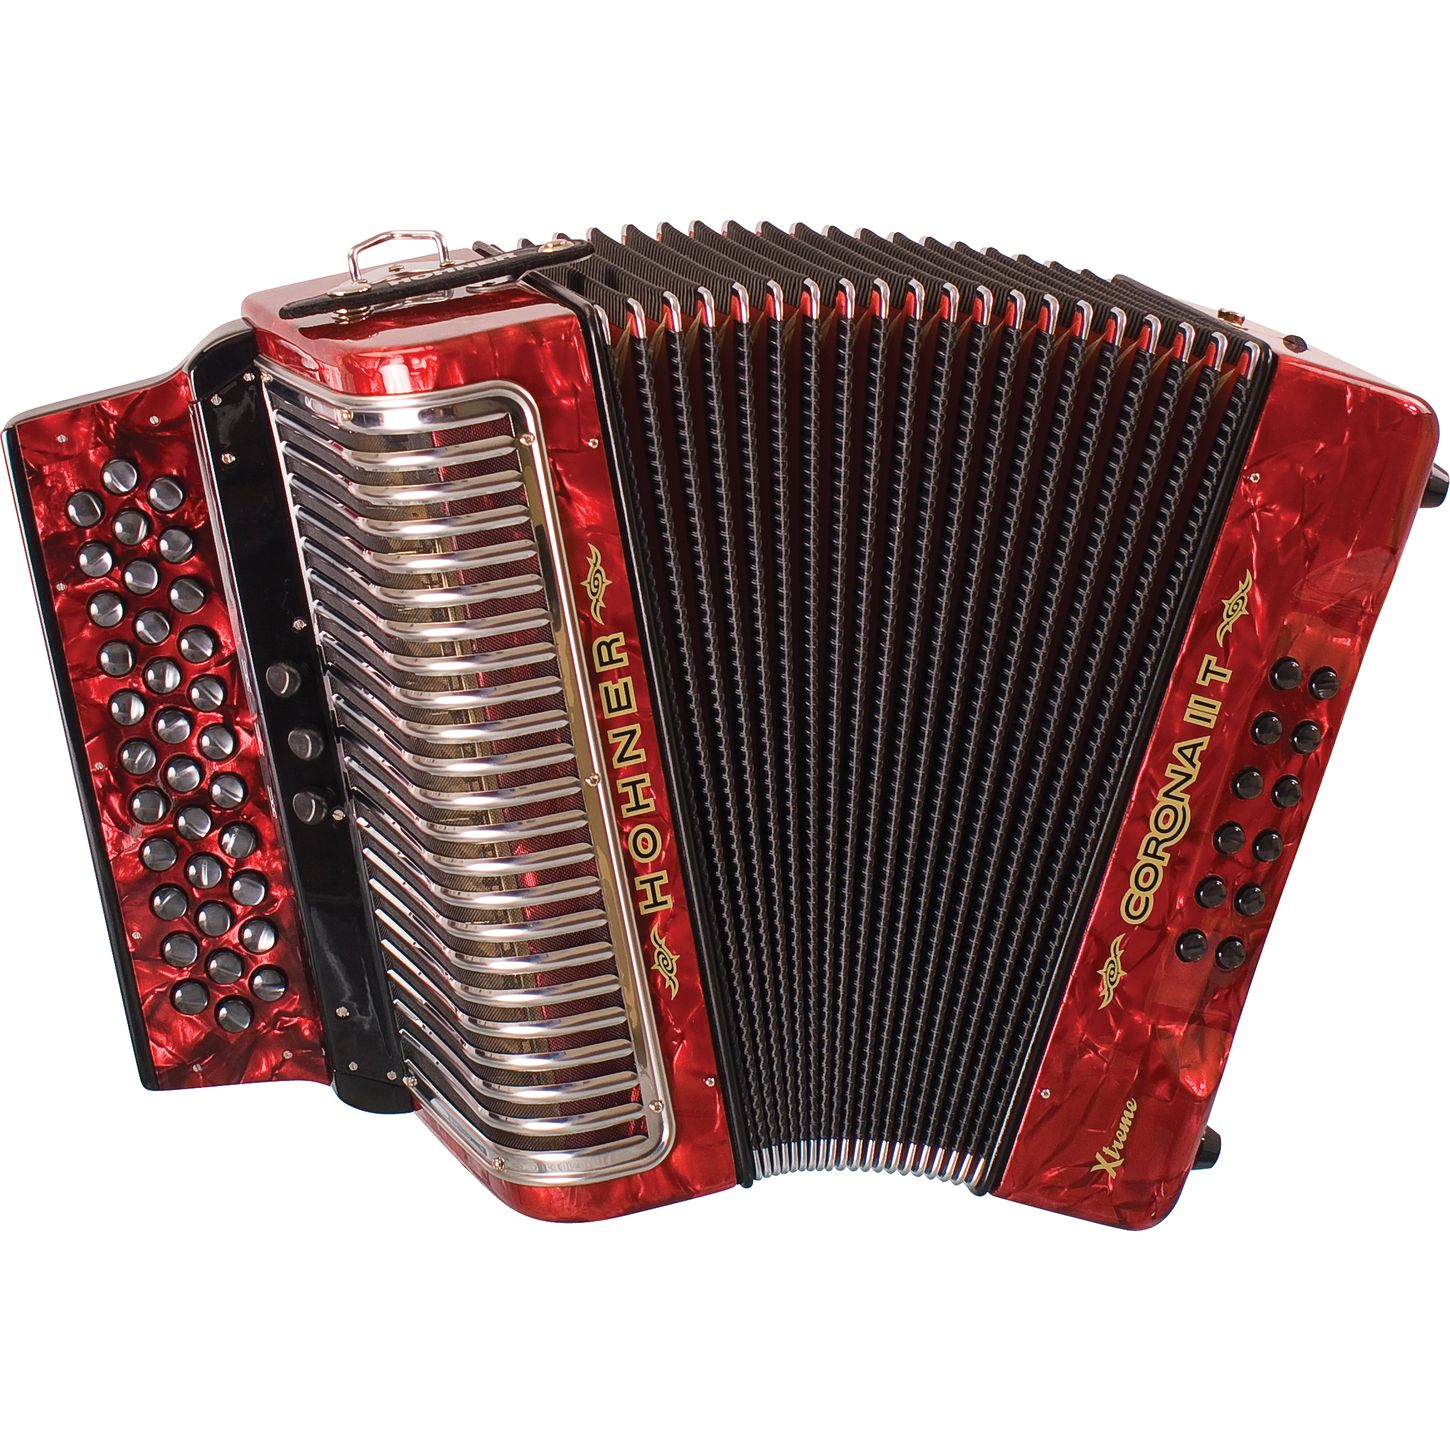 Red Hohner